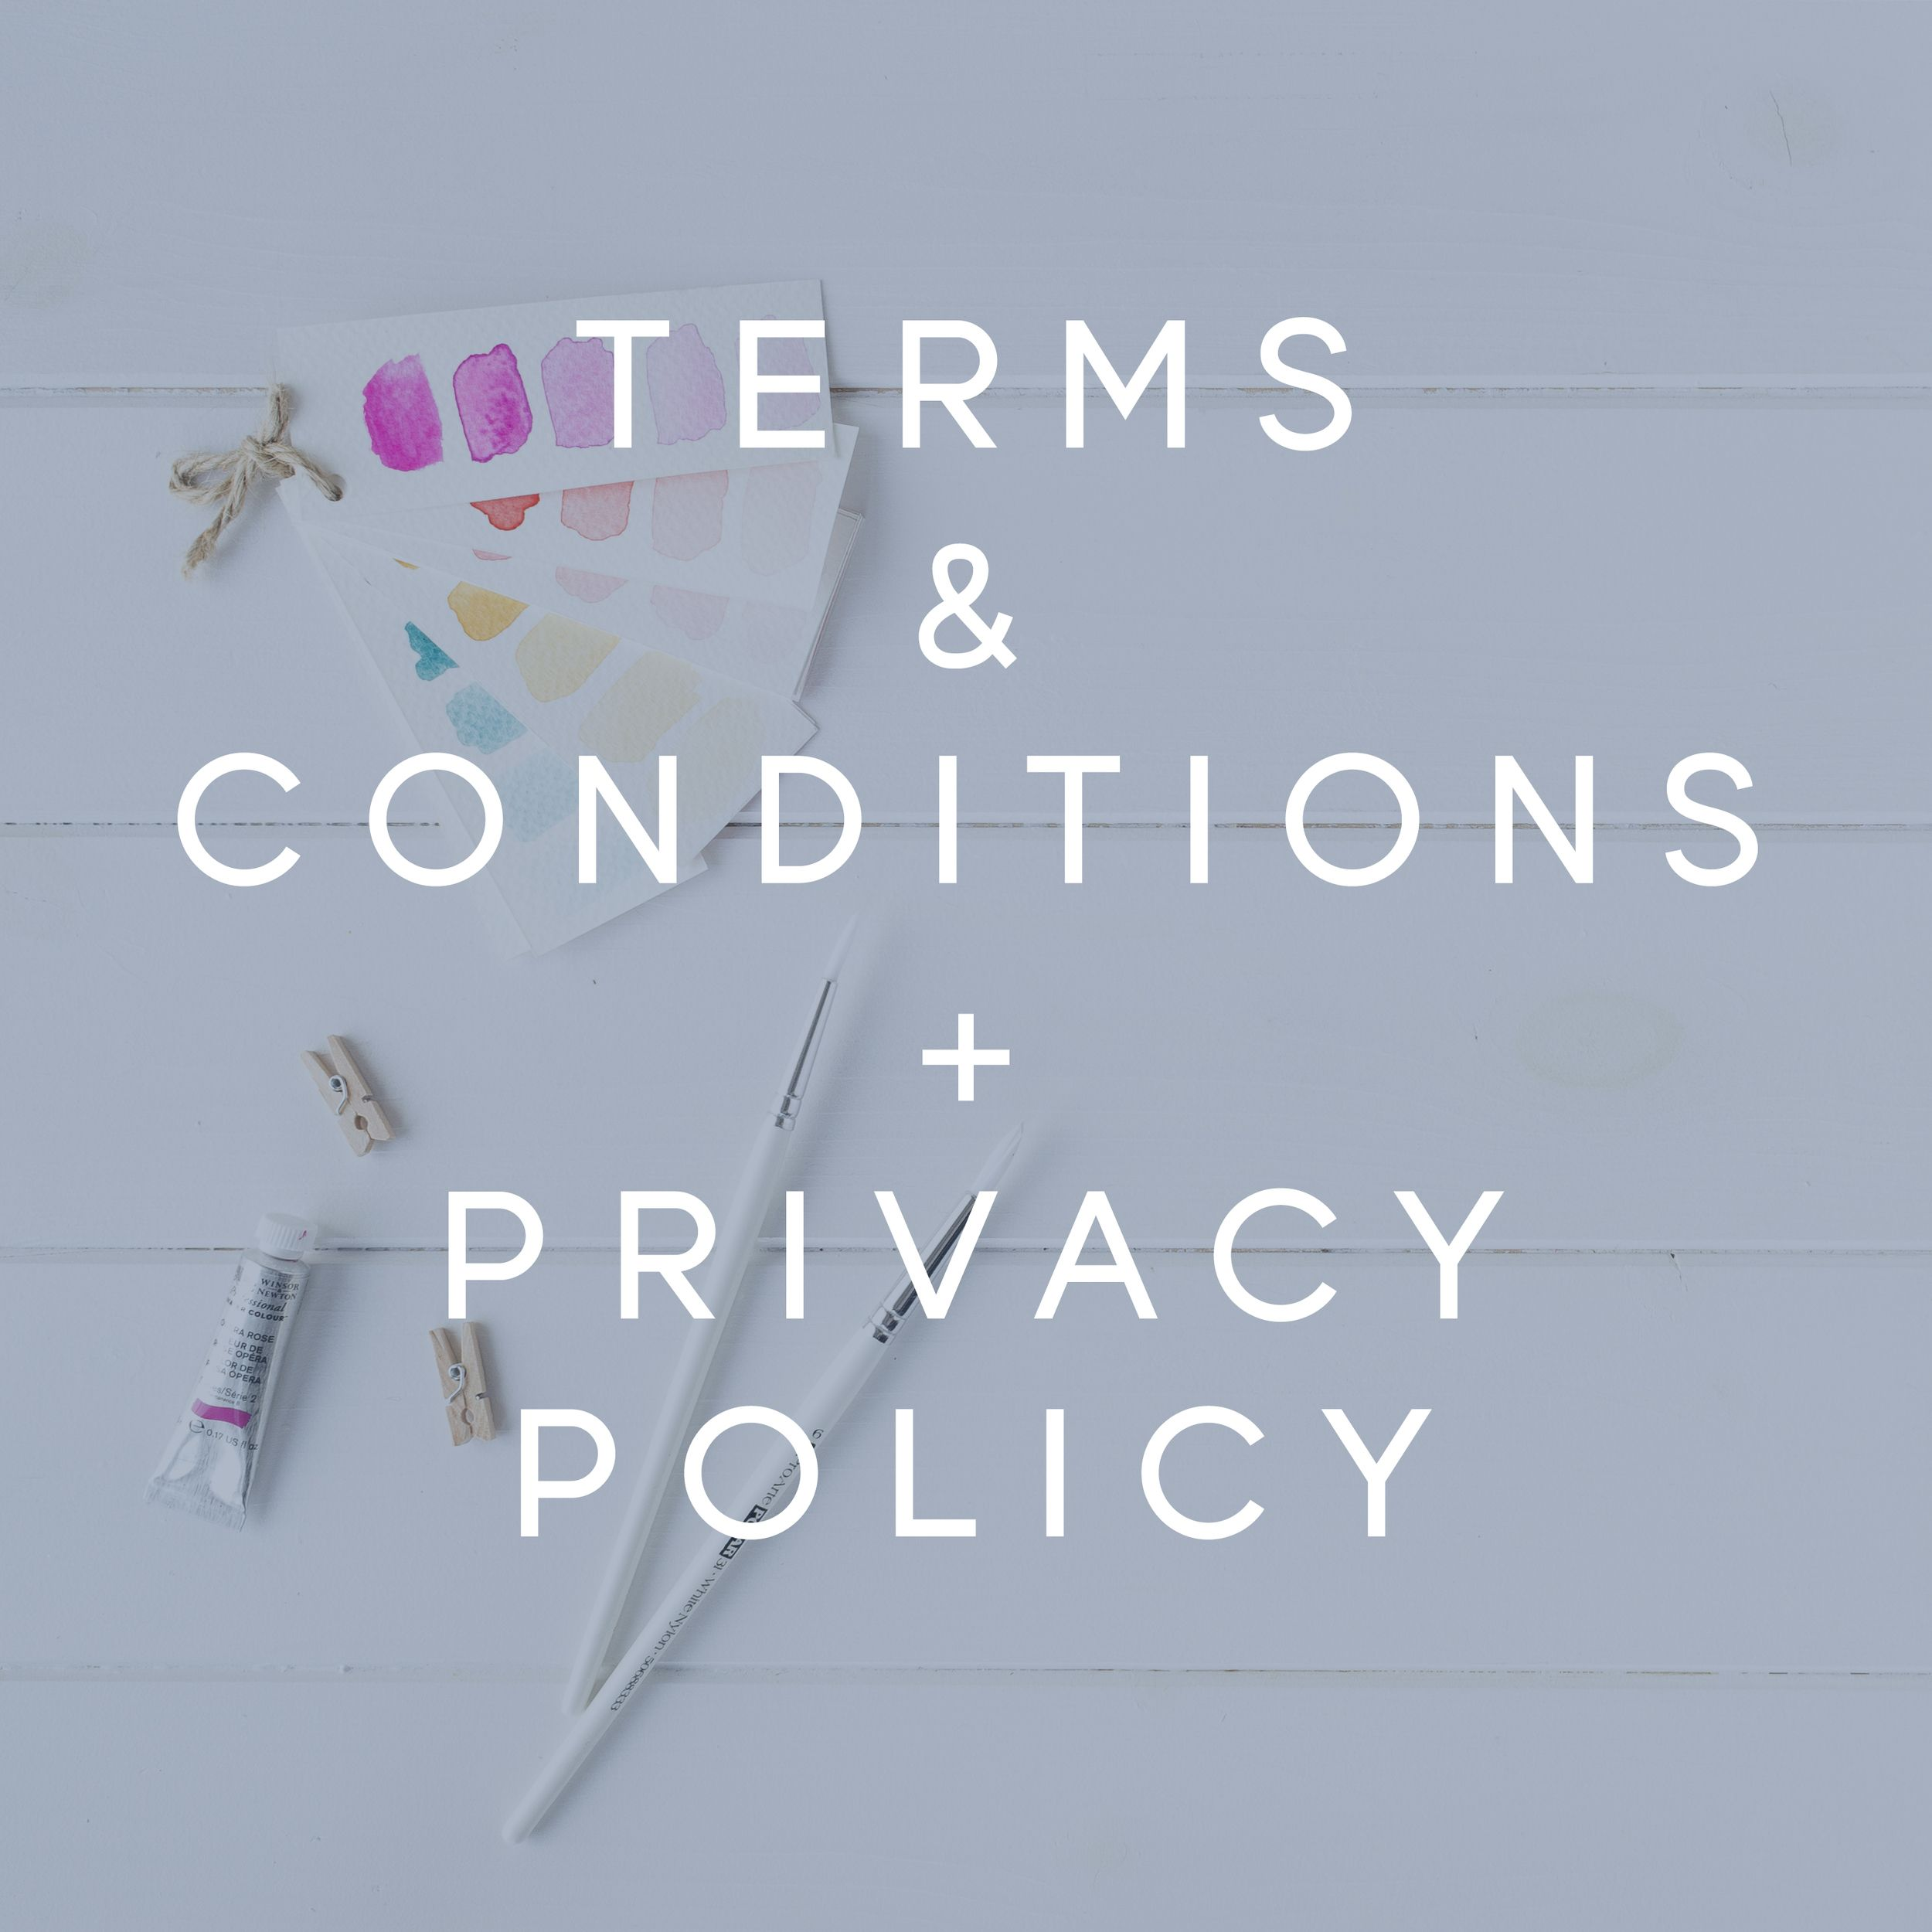 Terms & Conditions + Privacy Policy for Your